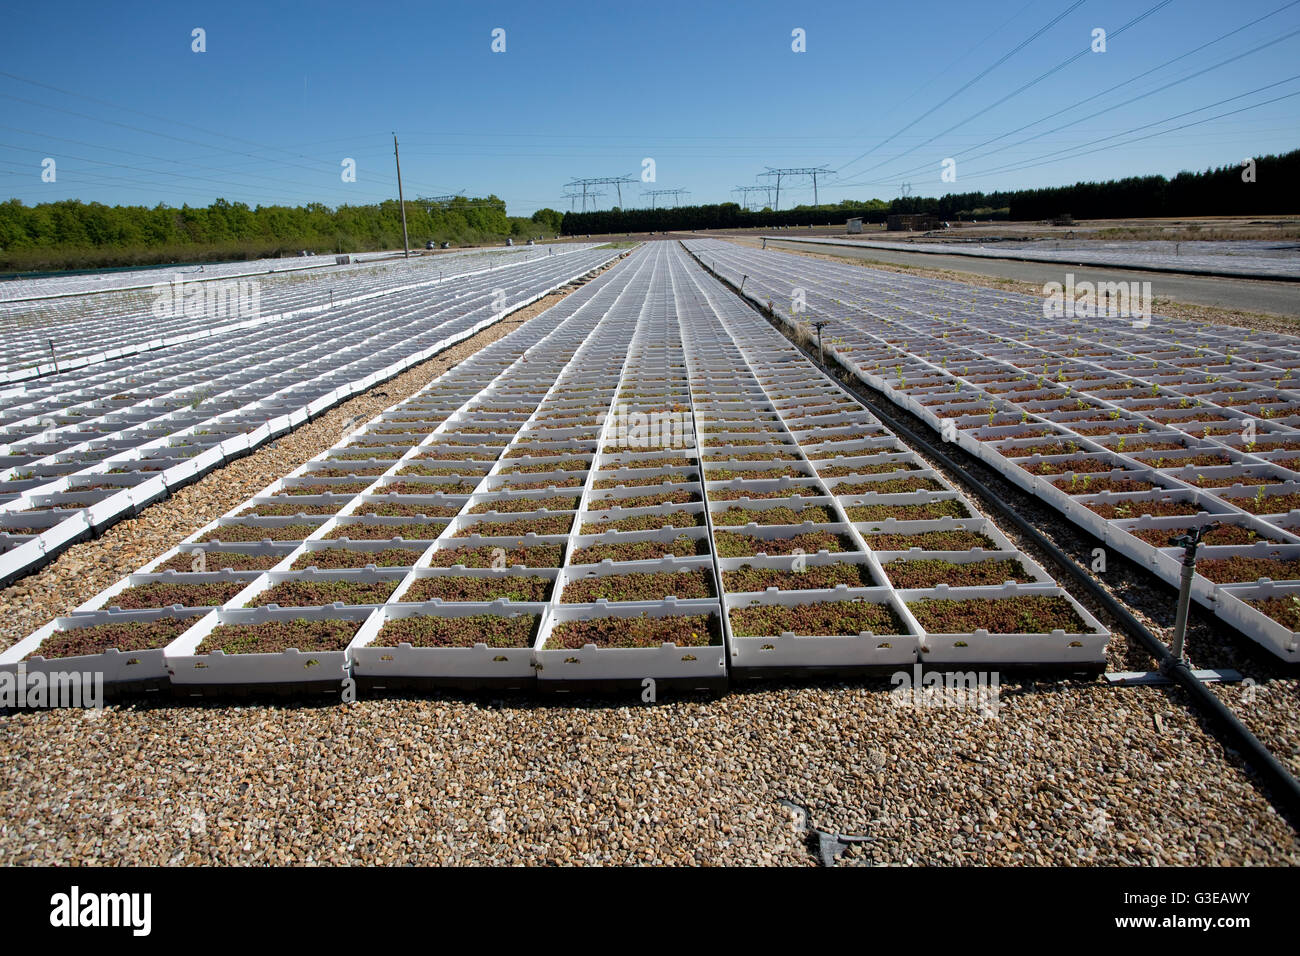 Plants growing in rows of boxes on ground next to Dampierre nuclear power station France - Stock Image